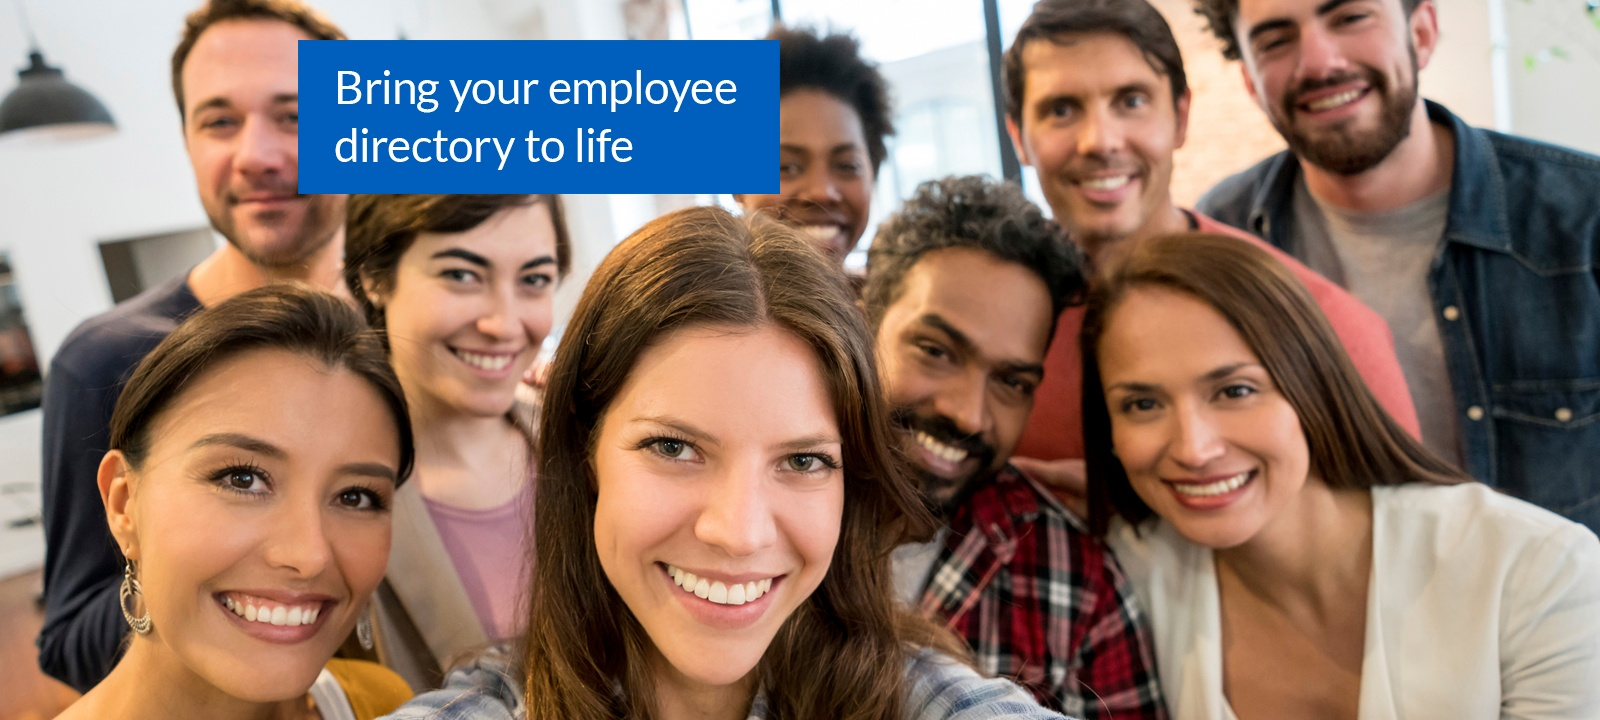 Bring your employee directory to life